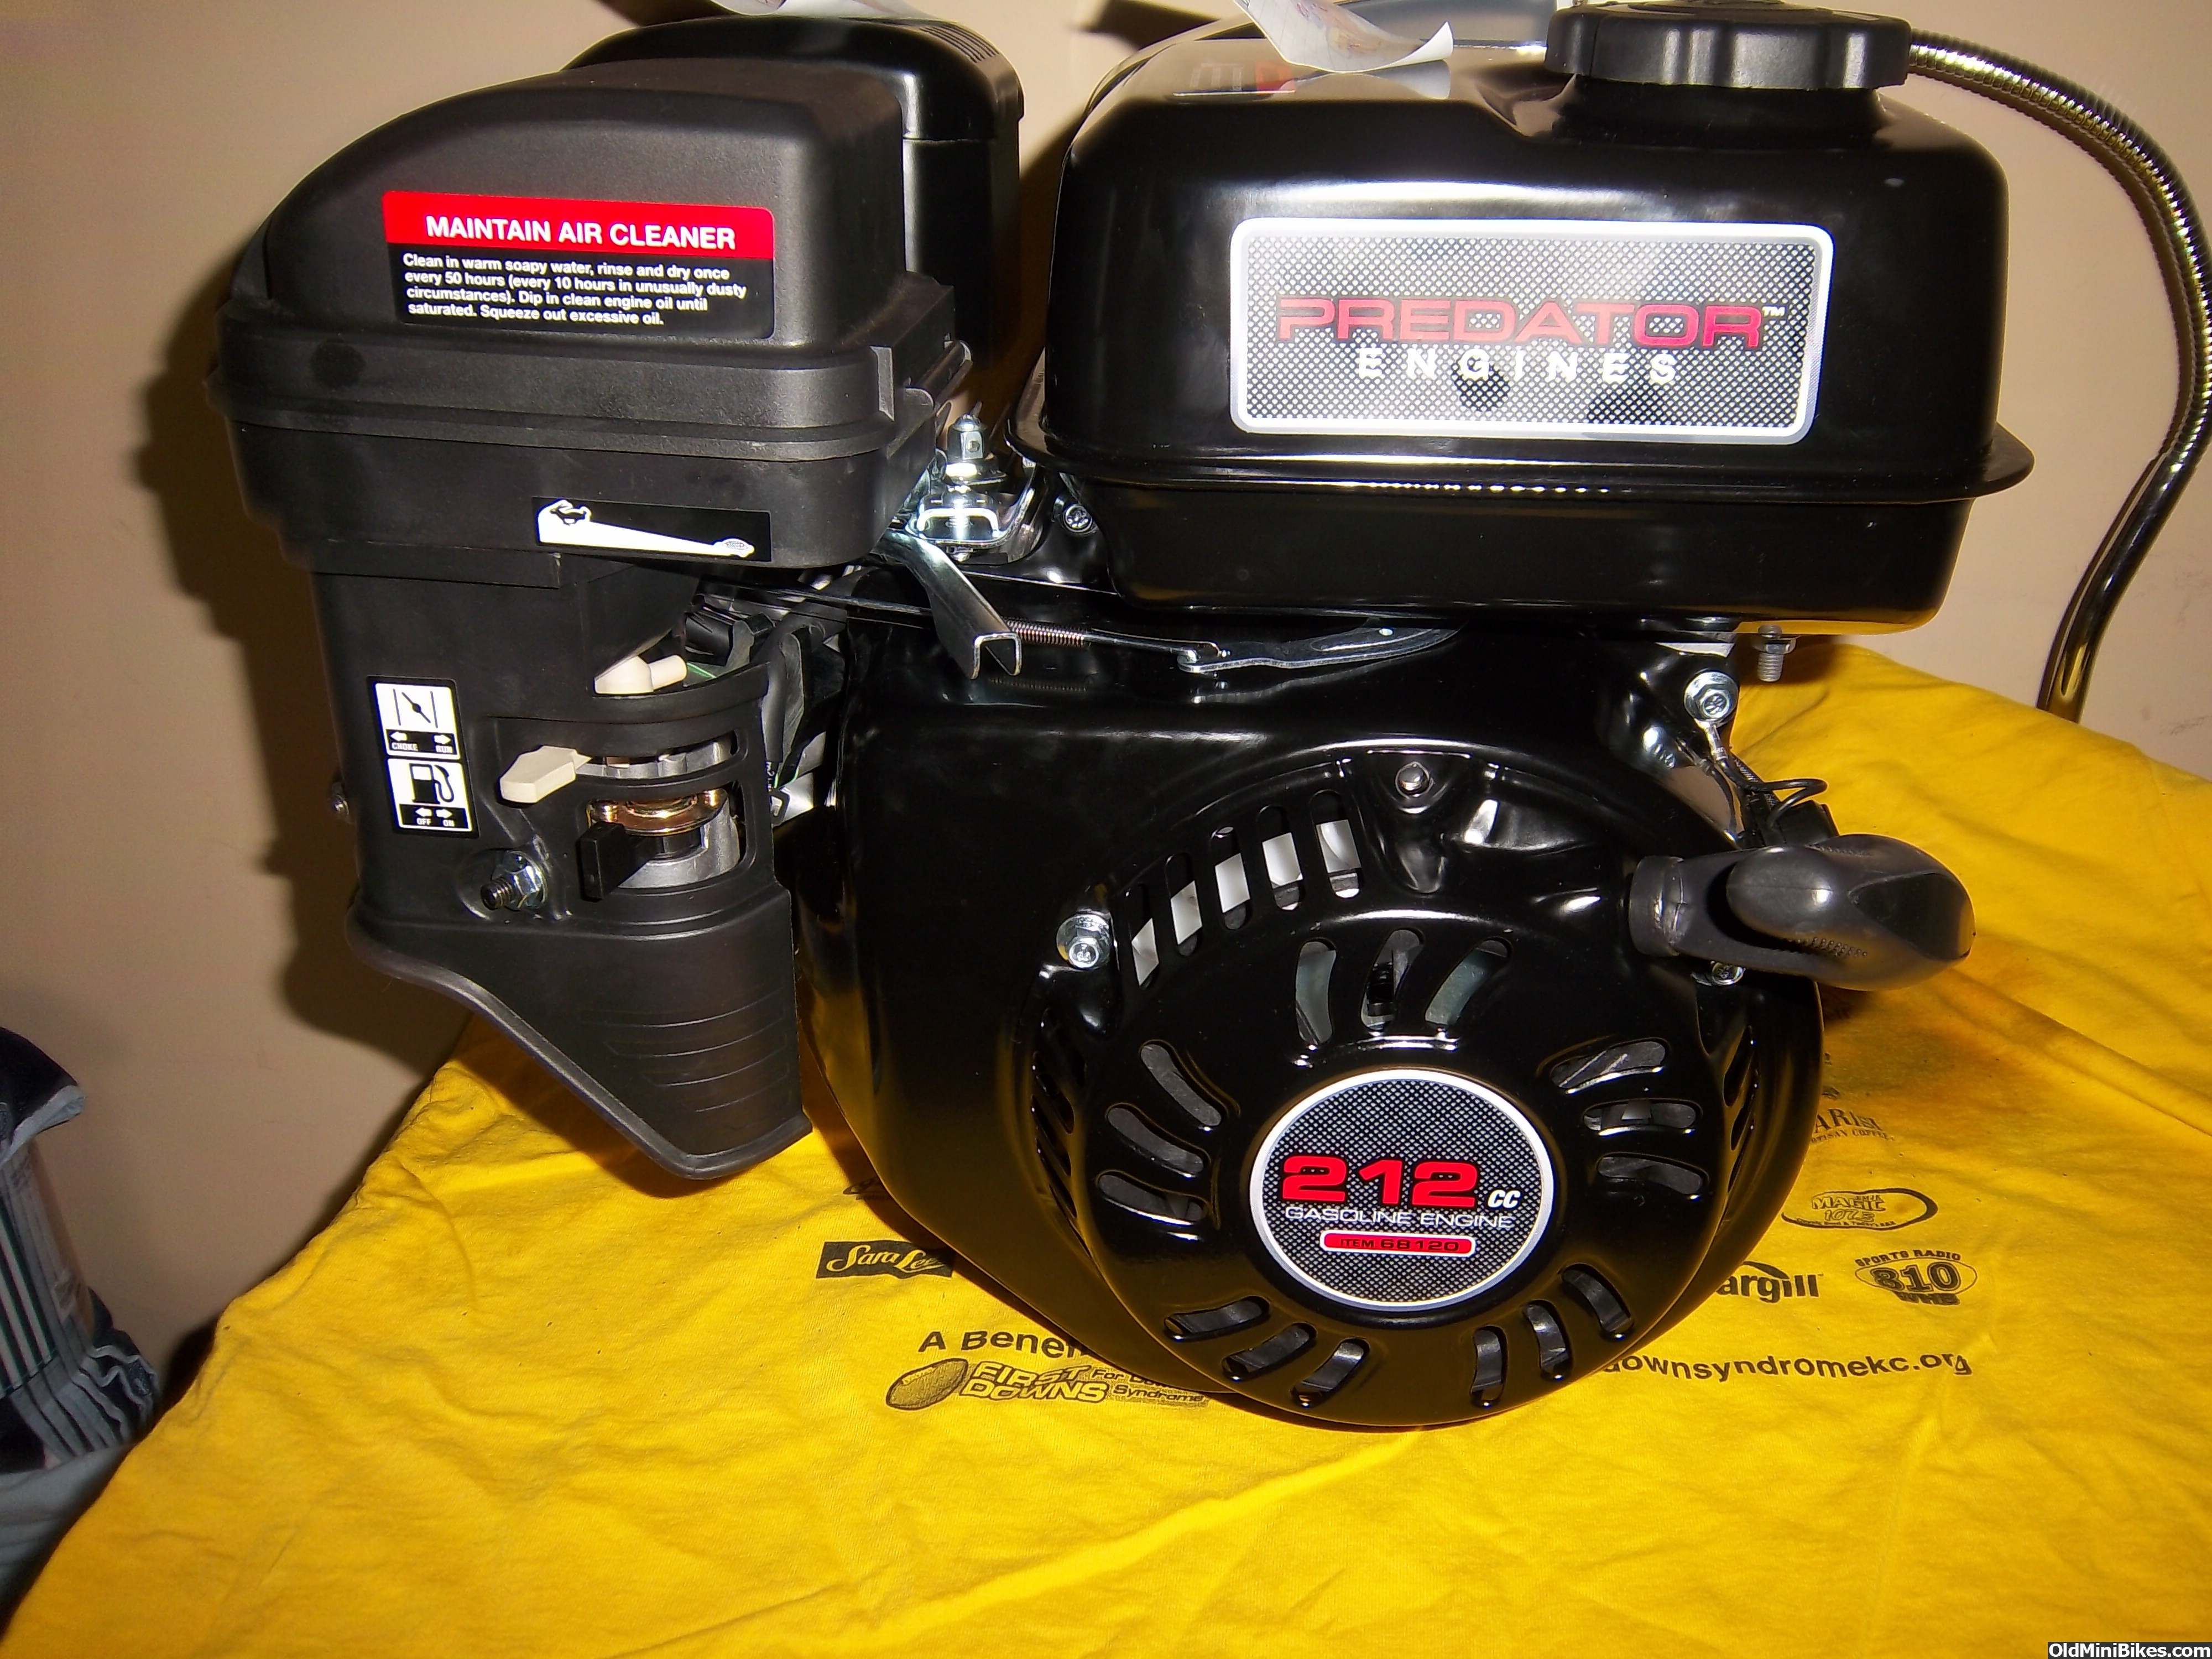 Harbor Freight Predator 212 Engine